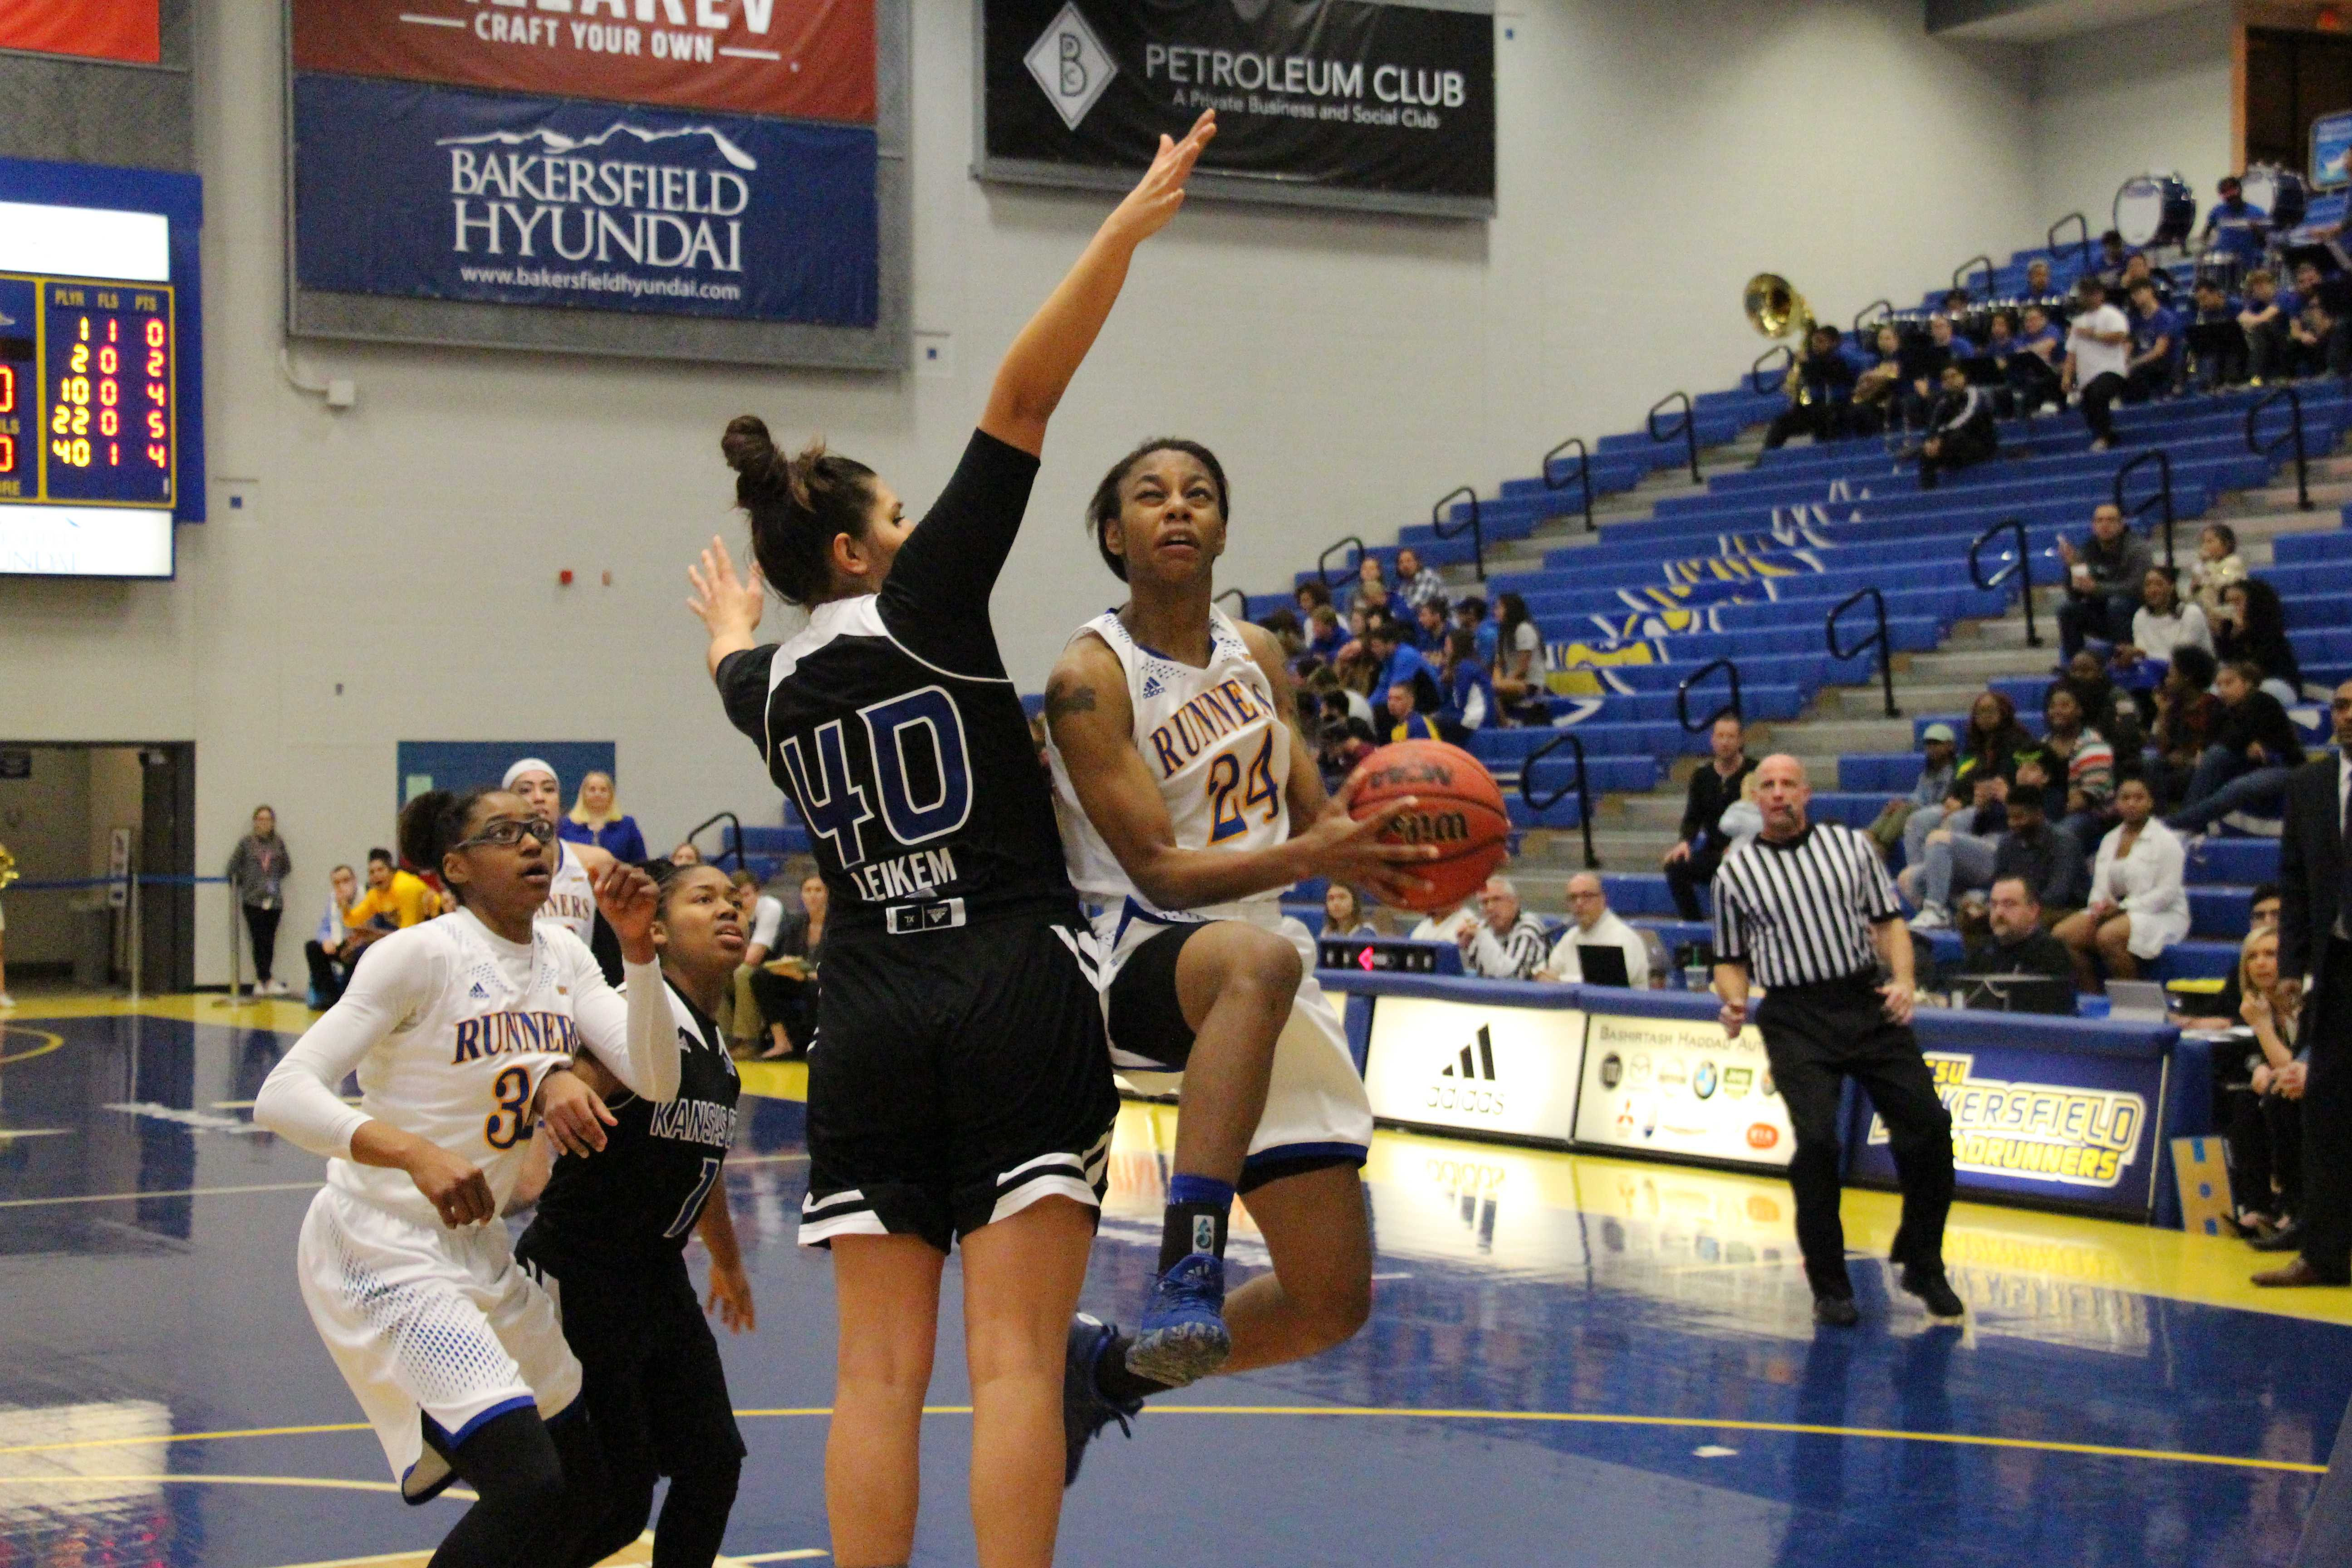 Roadrunners smother UMKC in record-setting day